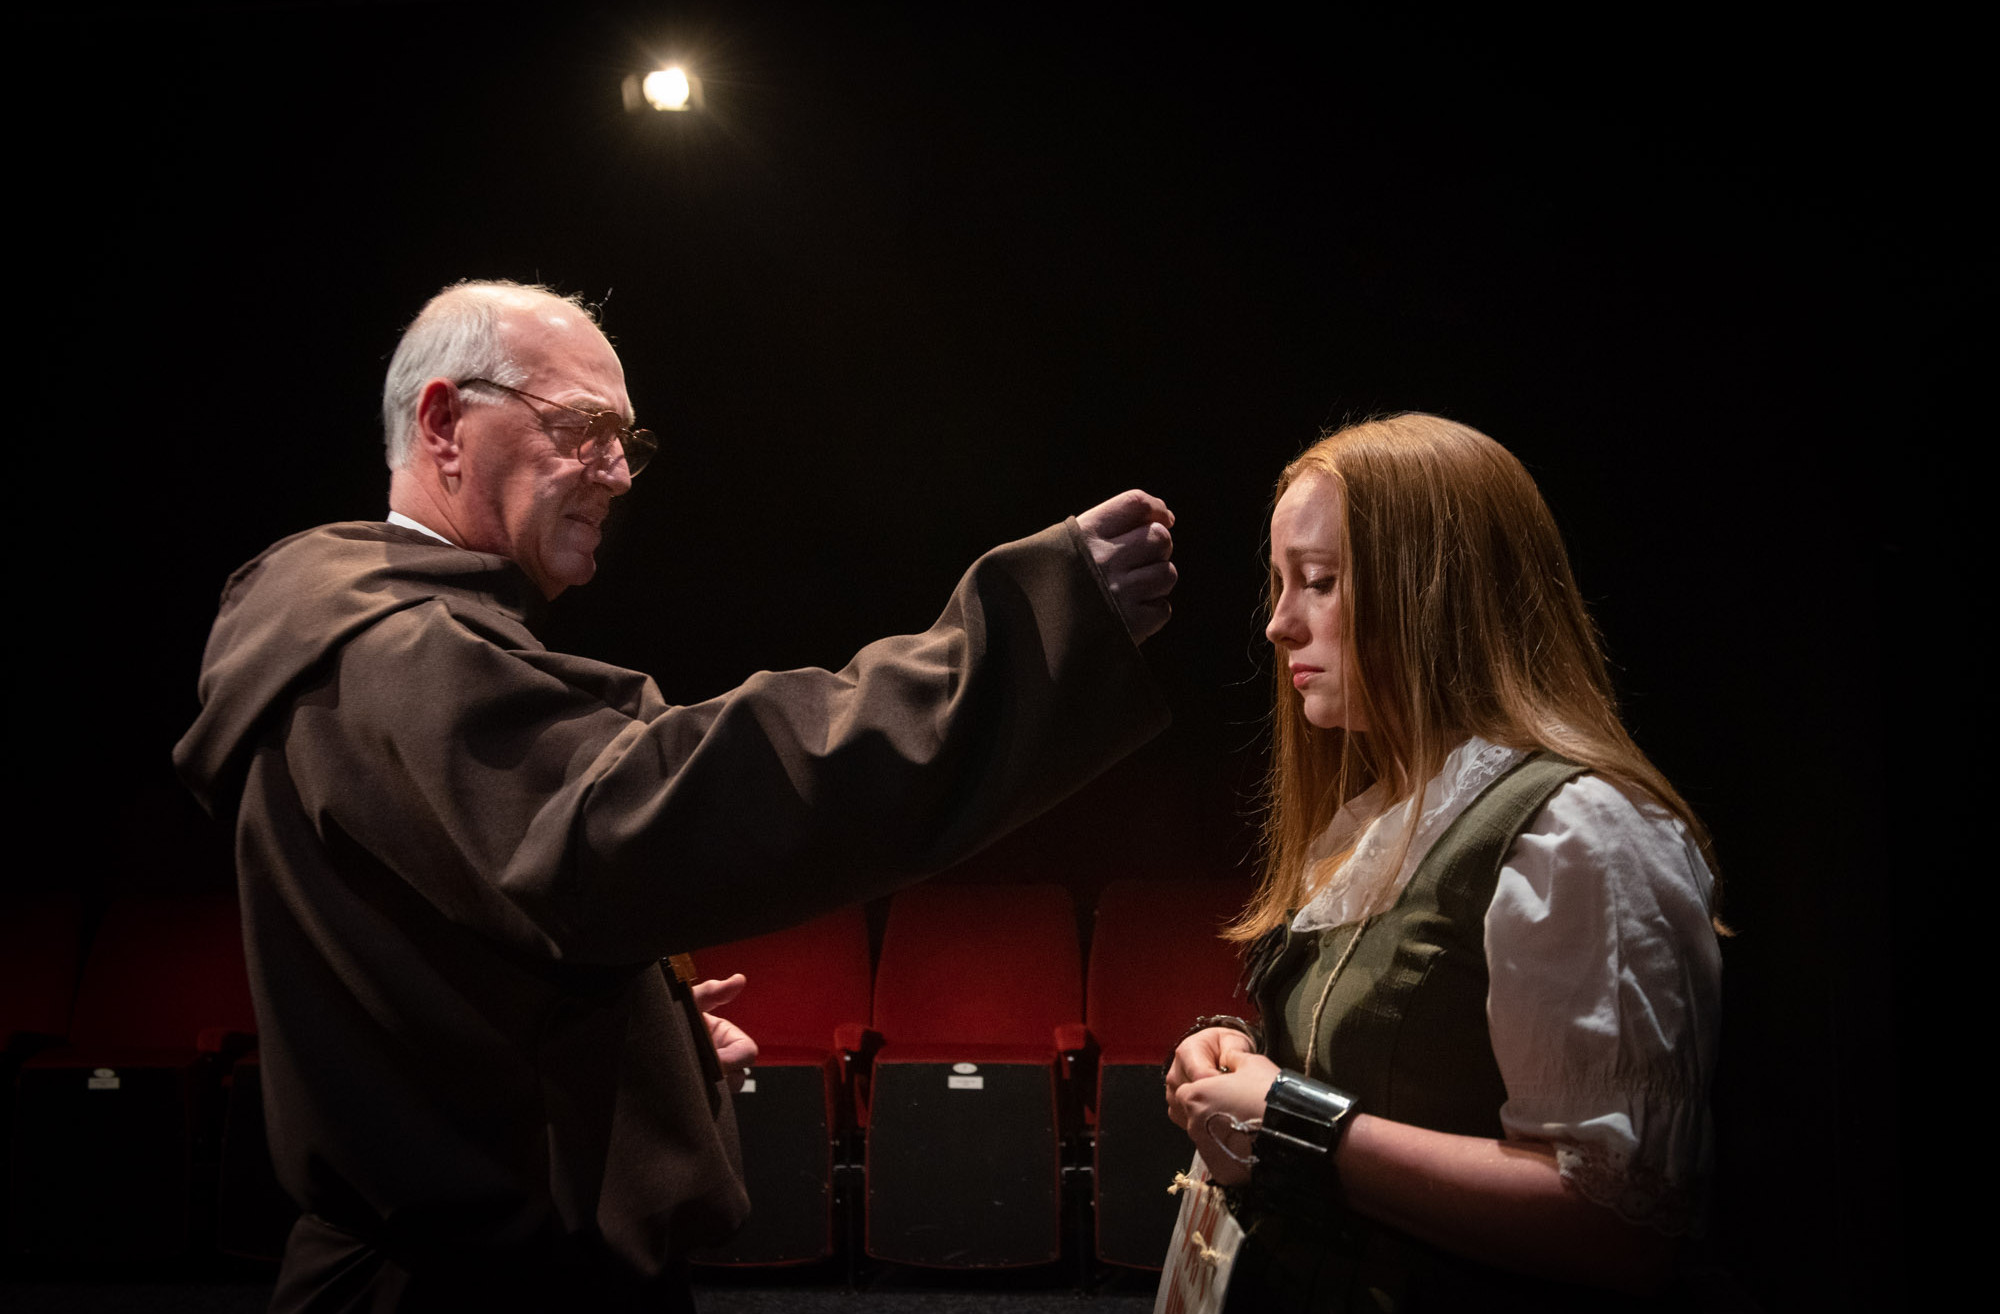 Bolton Little Theatre stage rehearsals of William Shakespeare play Measure for Measure featuring Peter Scofield as the Duke (in priest disguise) and Kimberley Riley-Shipperbottom as Juliet